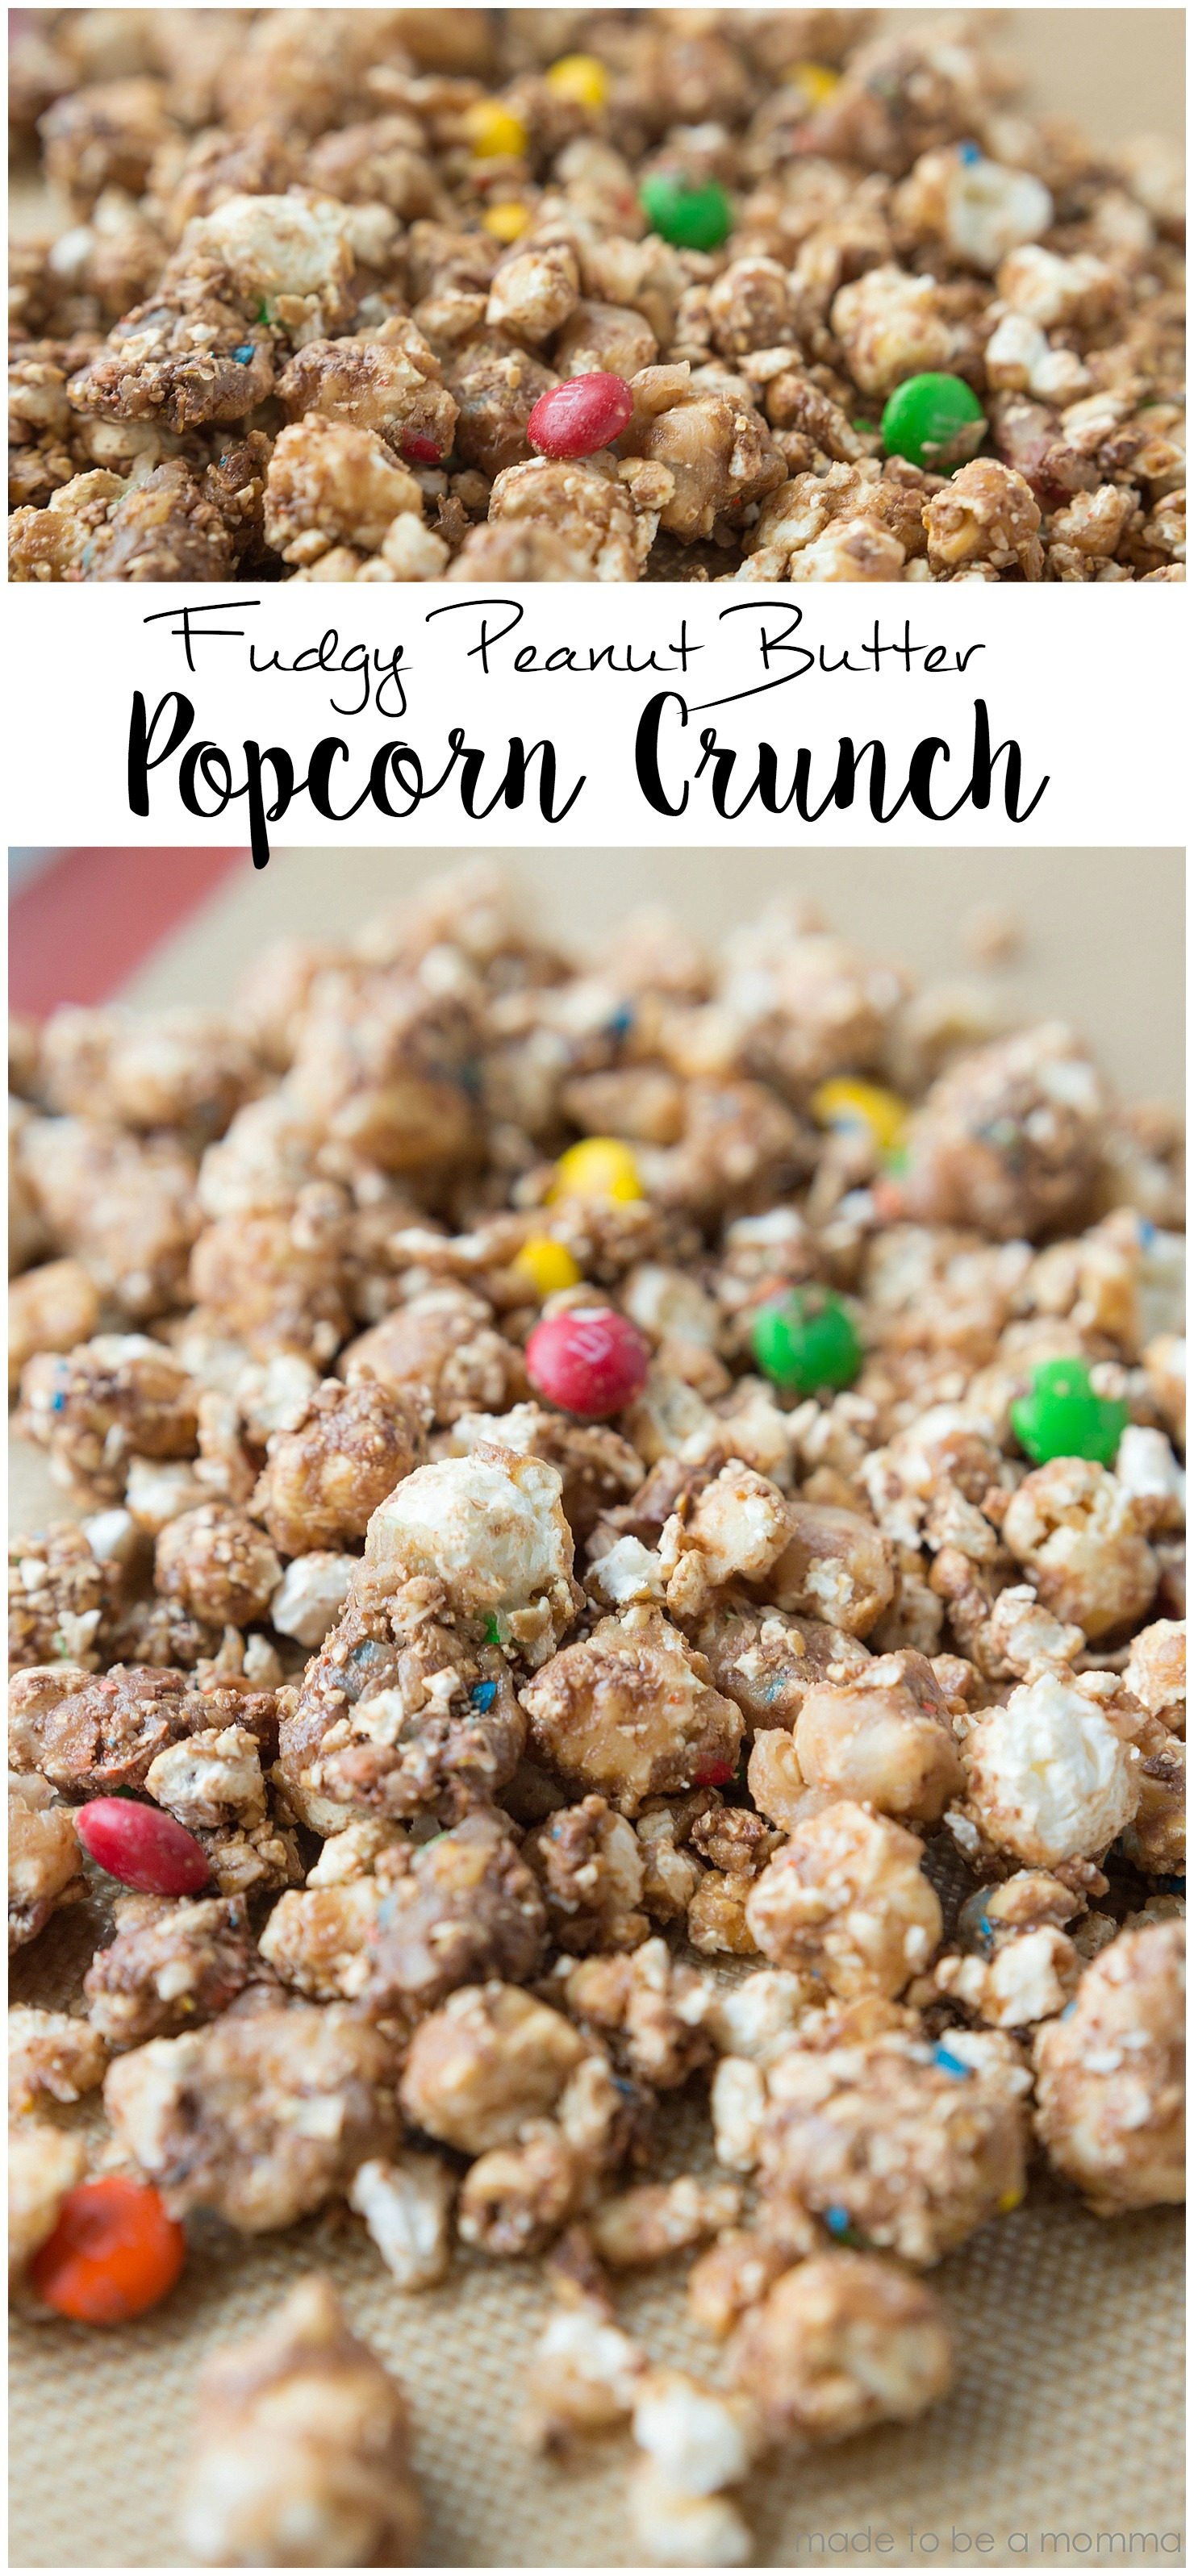 Fudgy Peanut Butter Popcorn Crunch